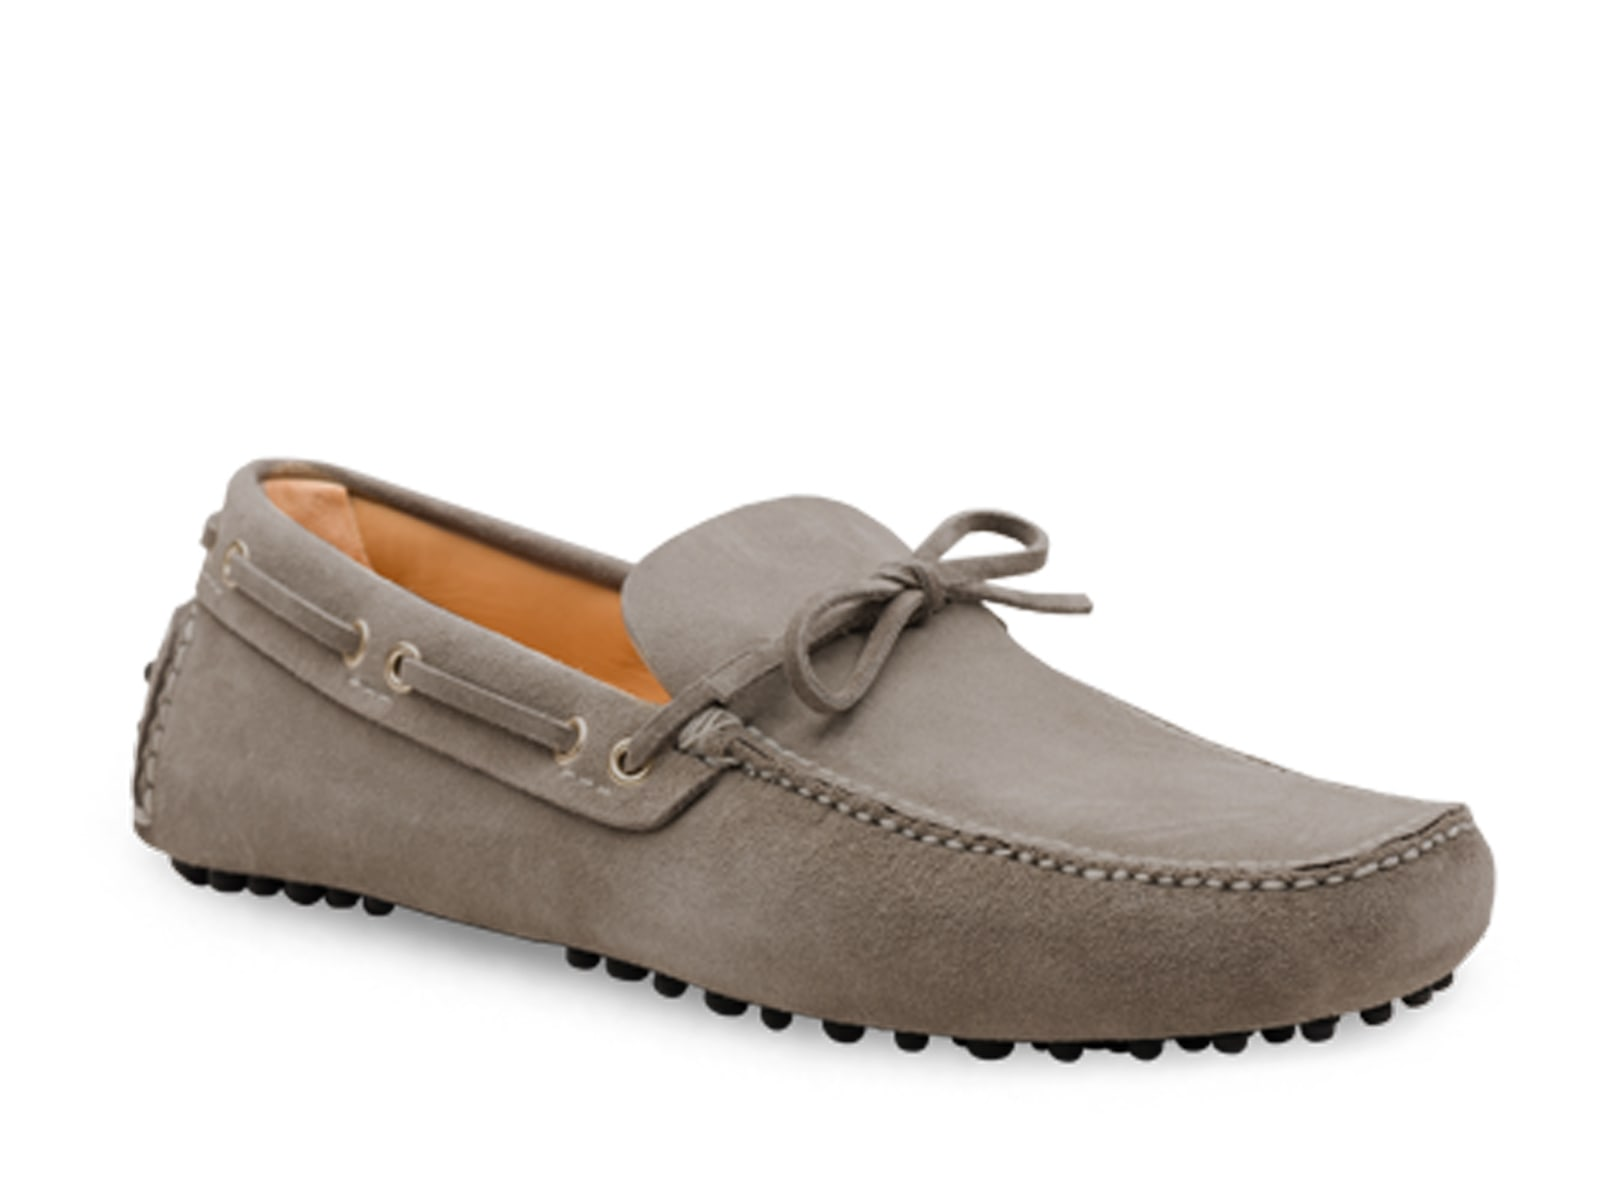 The-Car-Shoe-Suede-Driving-Shoes-min.jpg